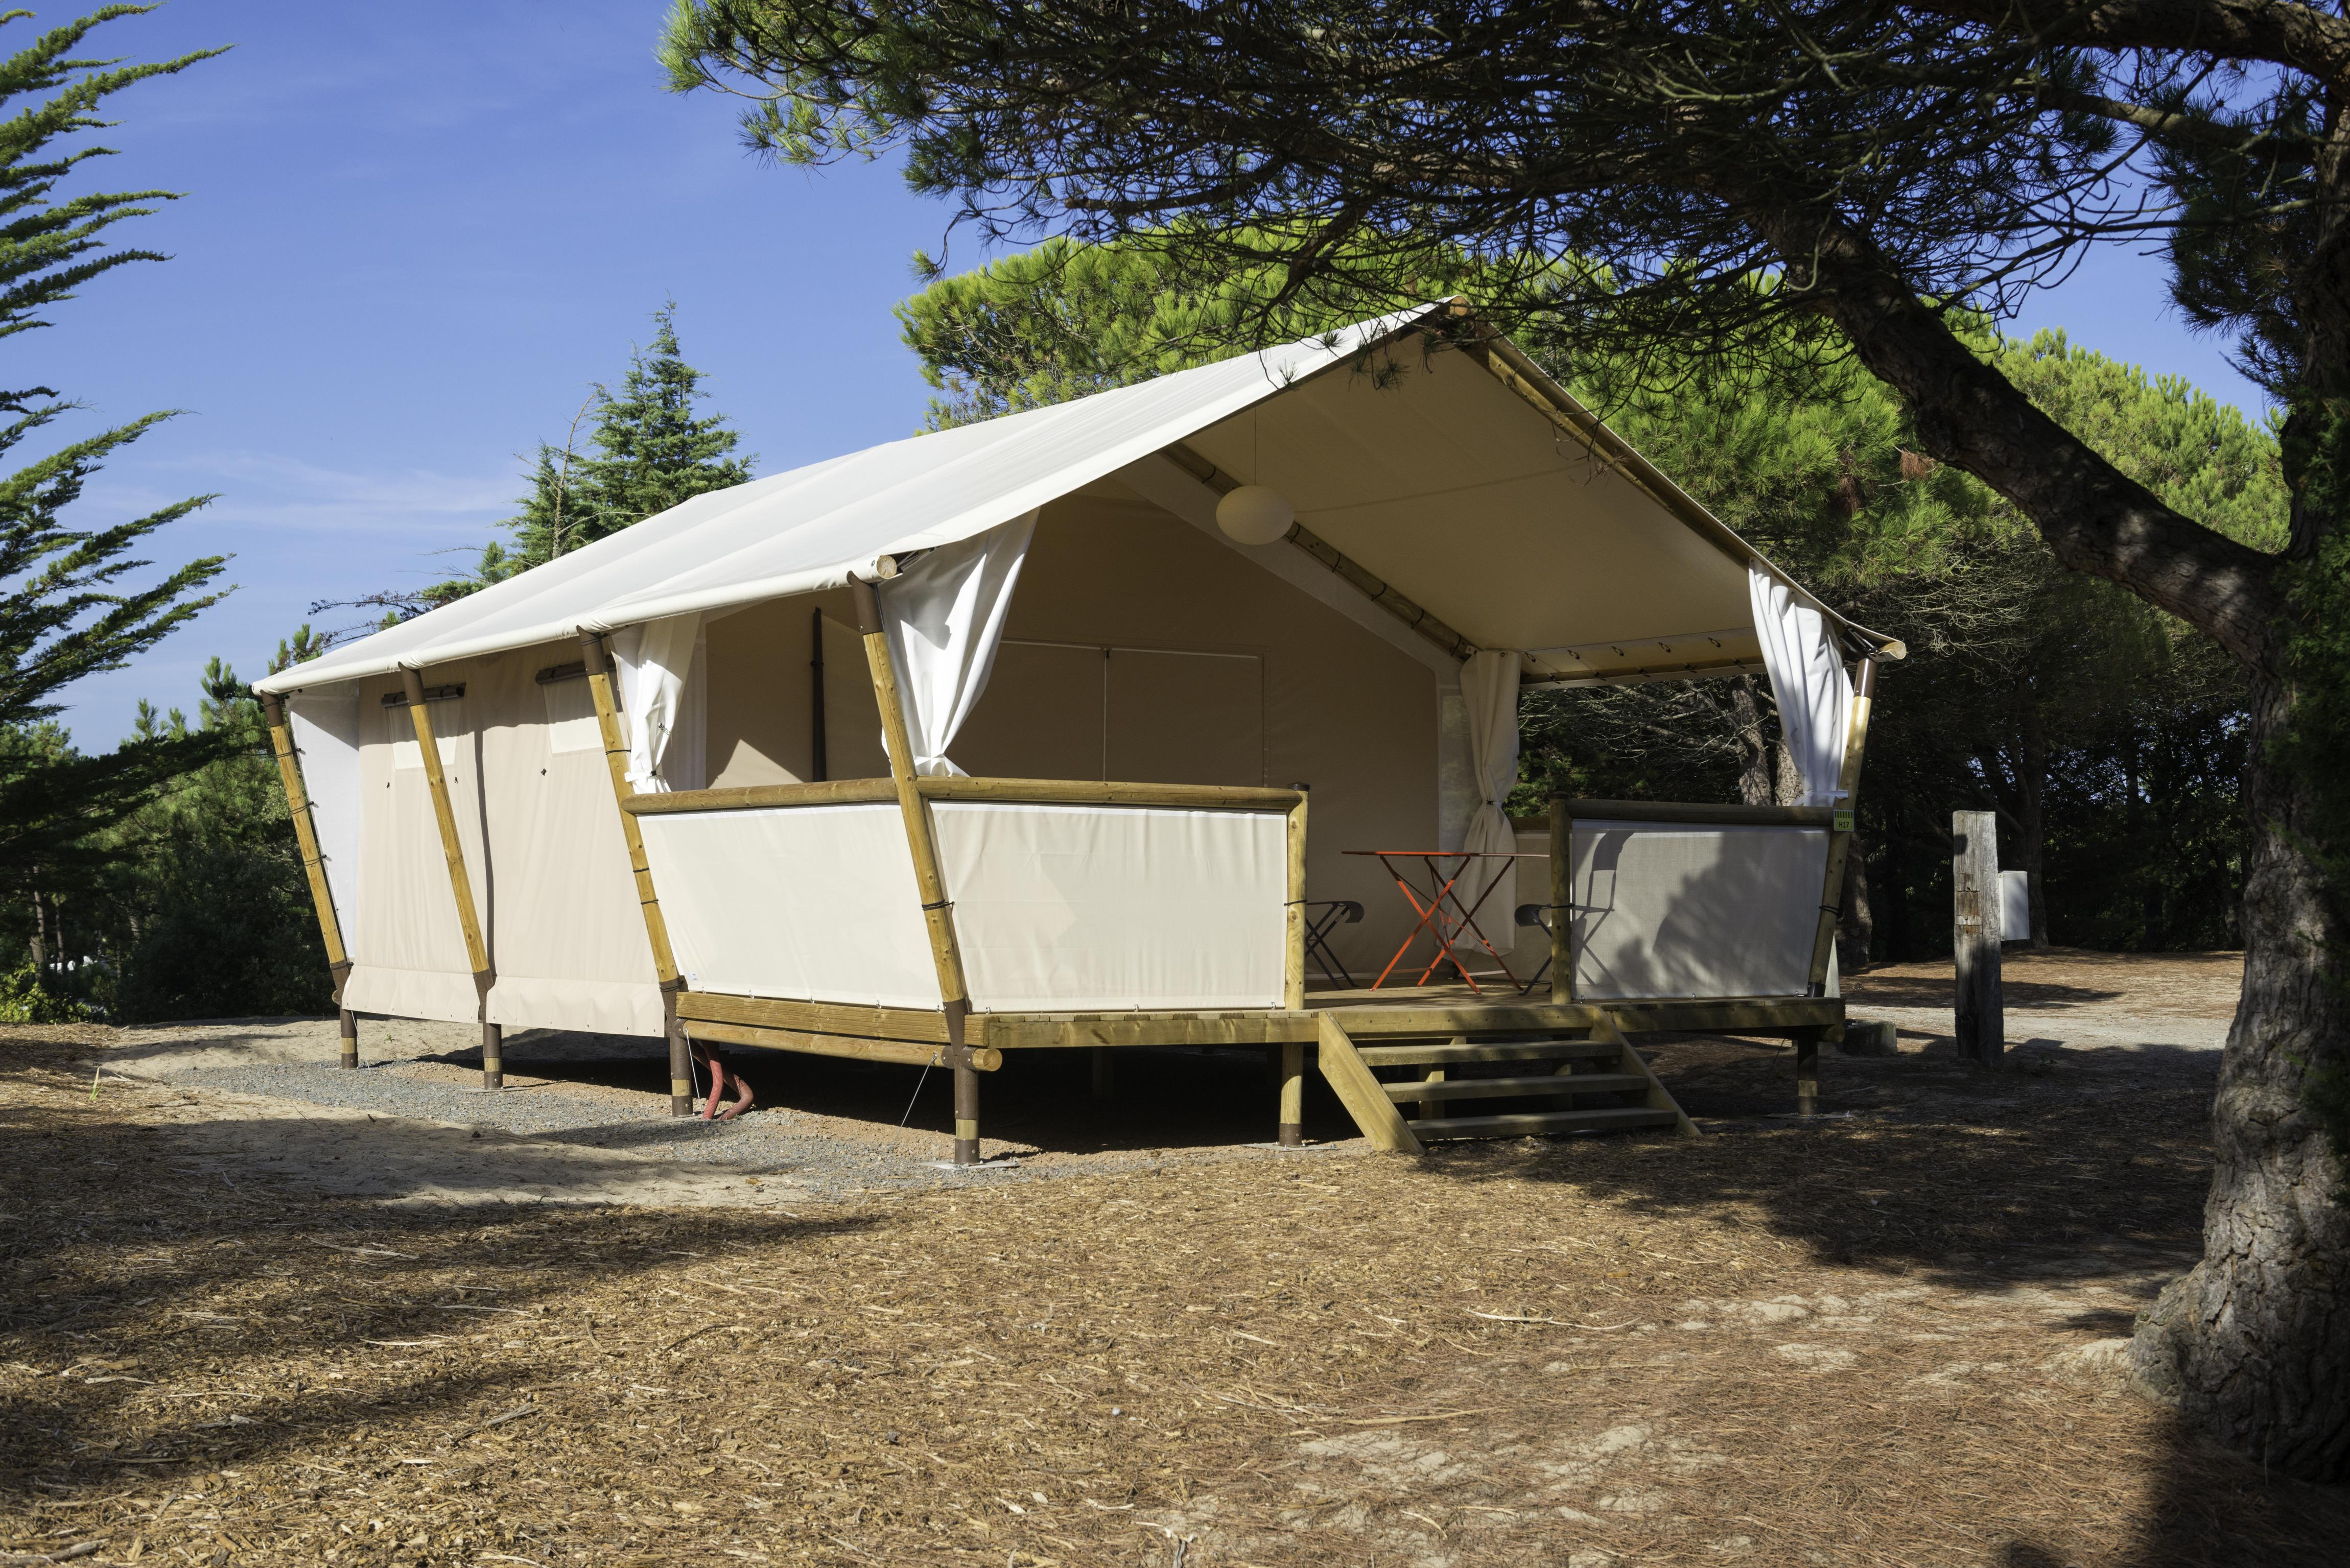 Camping Les Mimosas Provence Alpes Cote D Azur France Club Campings